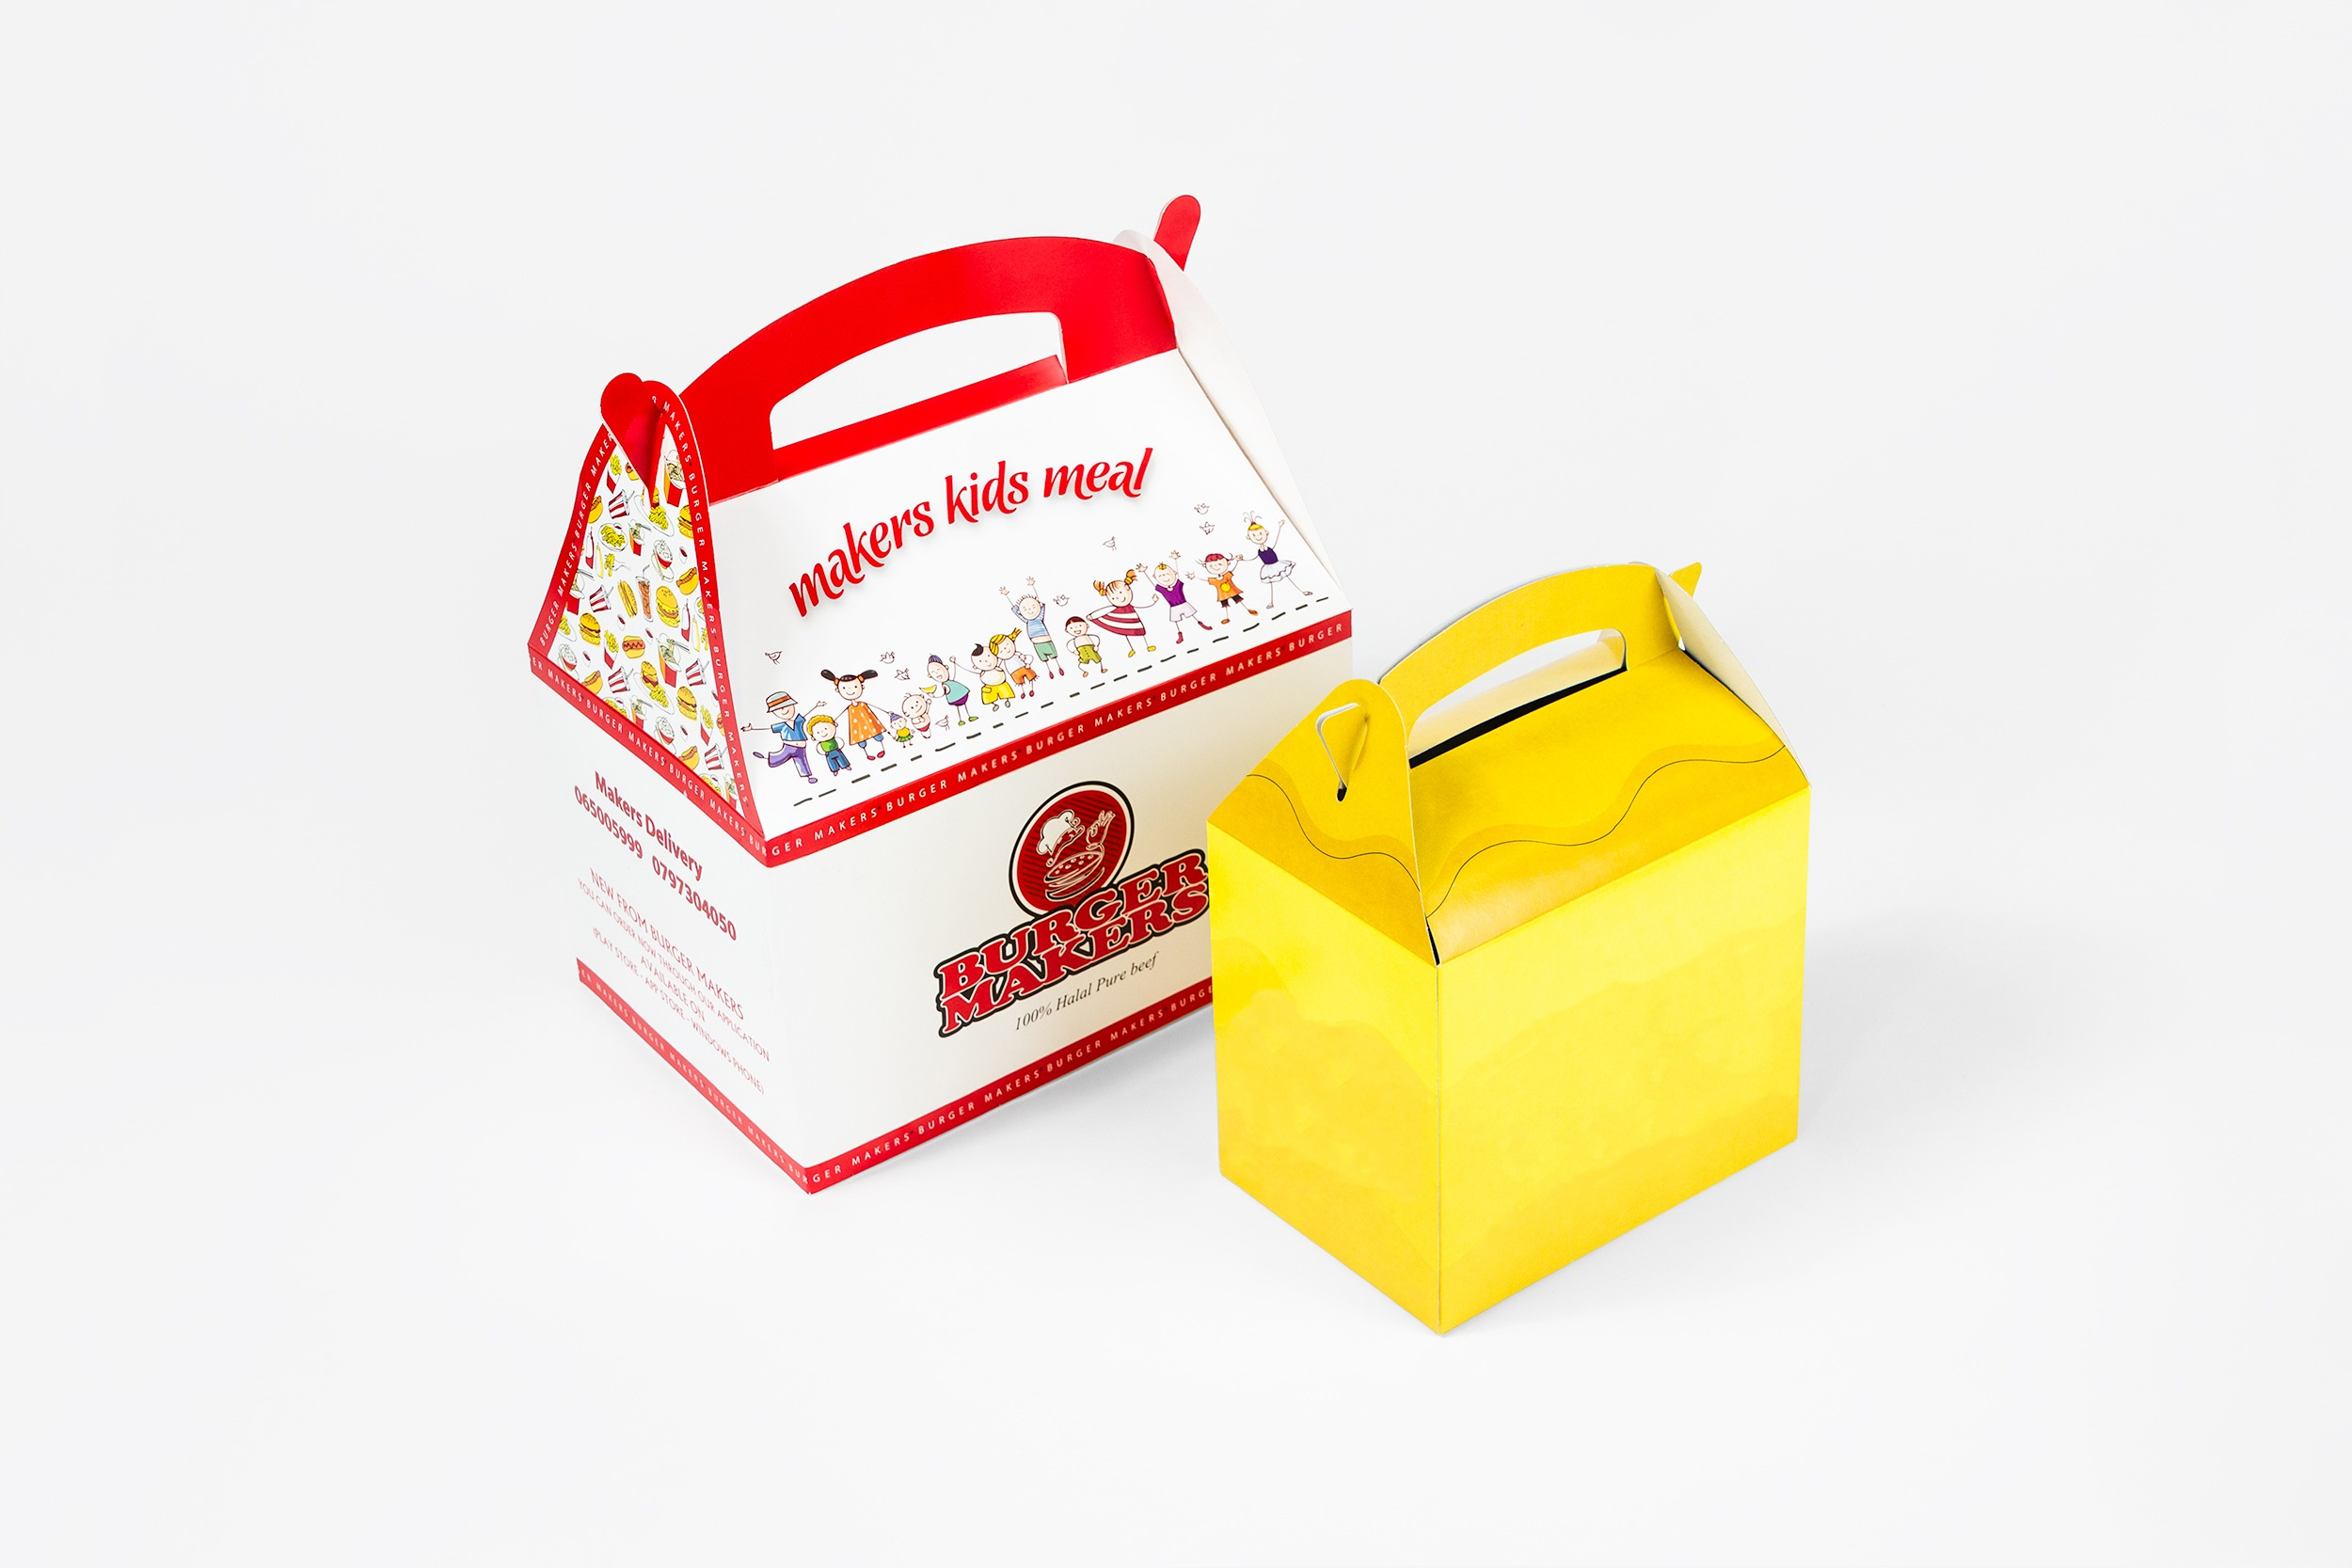 A selection of kids meal boxes, examples shown are of varying styles and sizes. These feature high levels of colour.